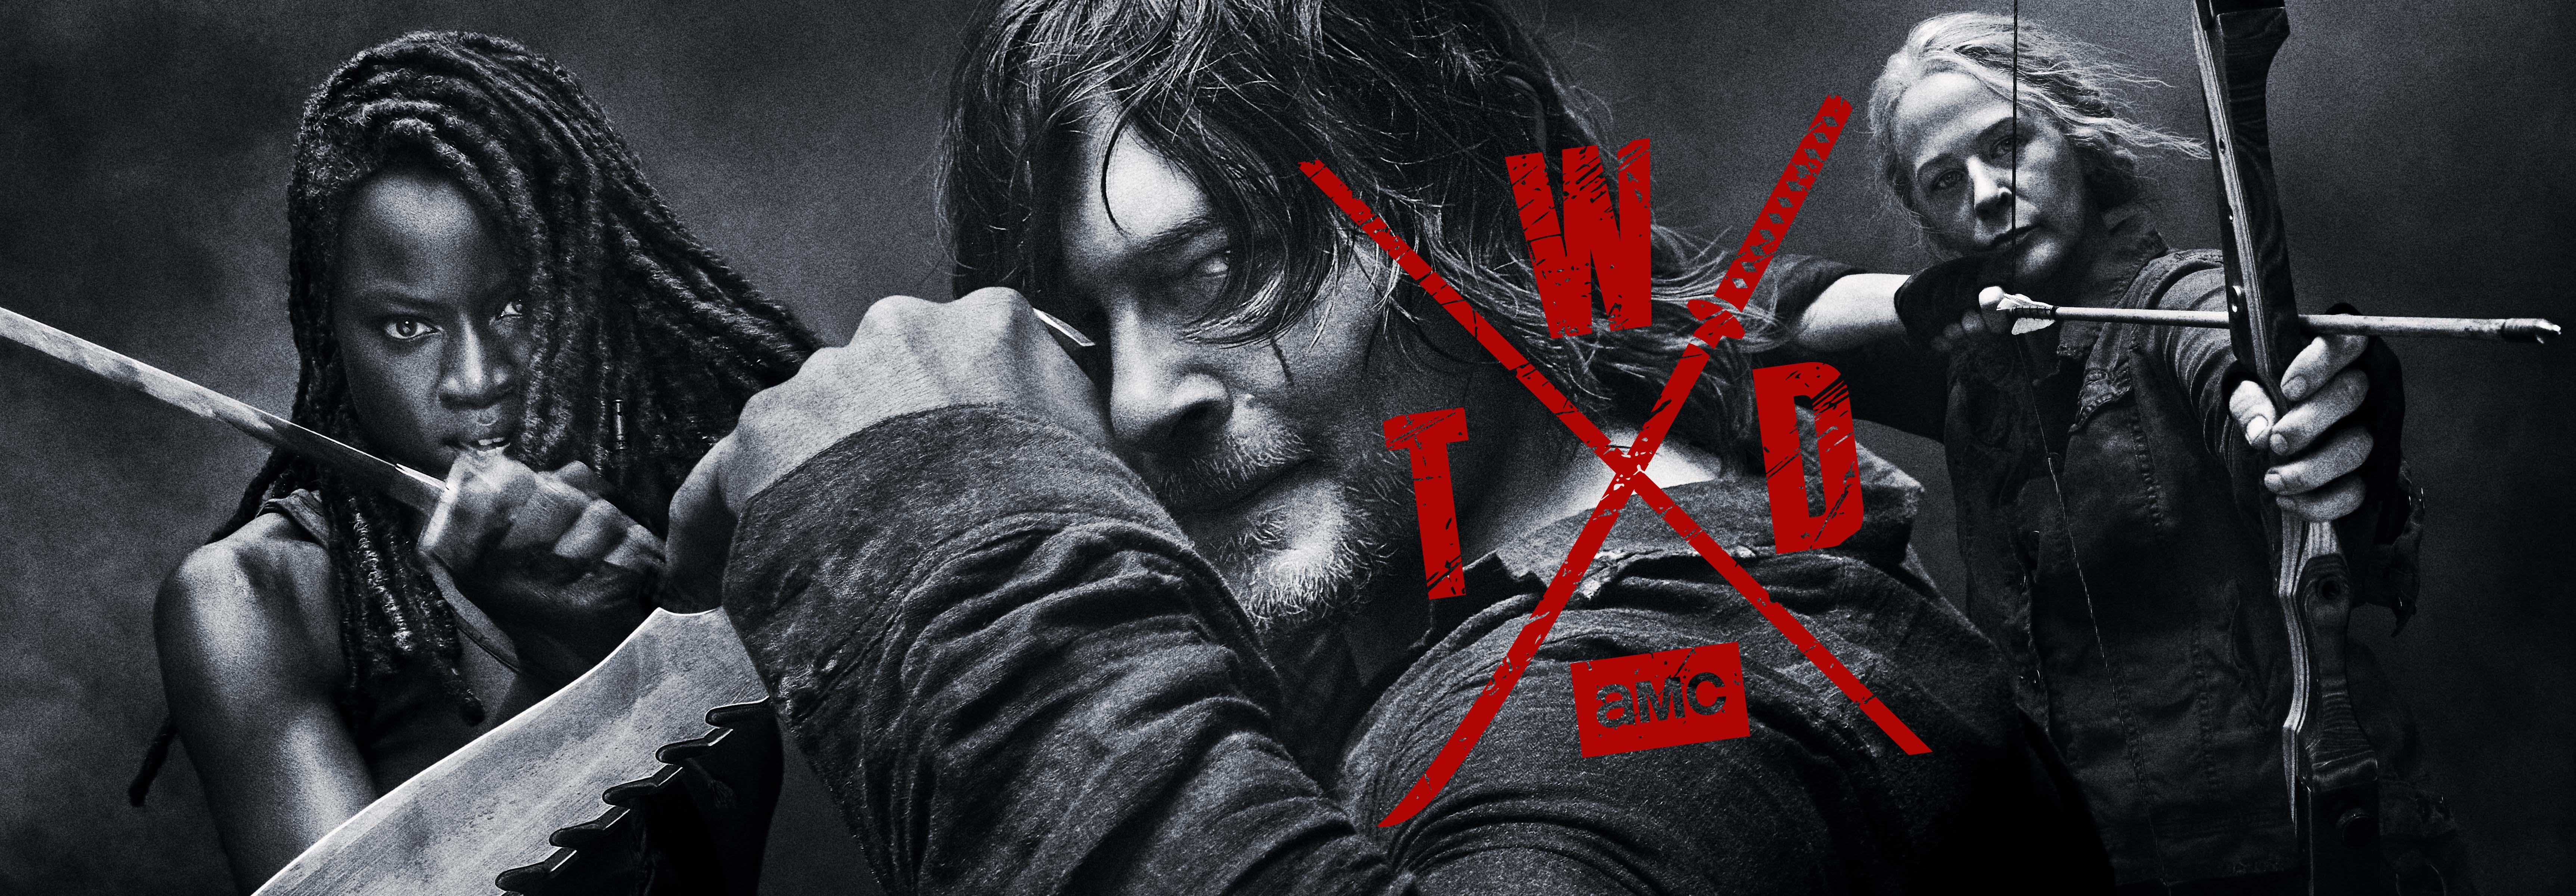 'The Walking Dead' SDCC Promotional Banner